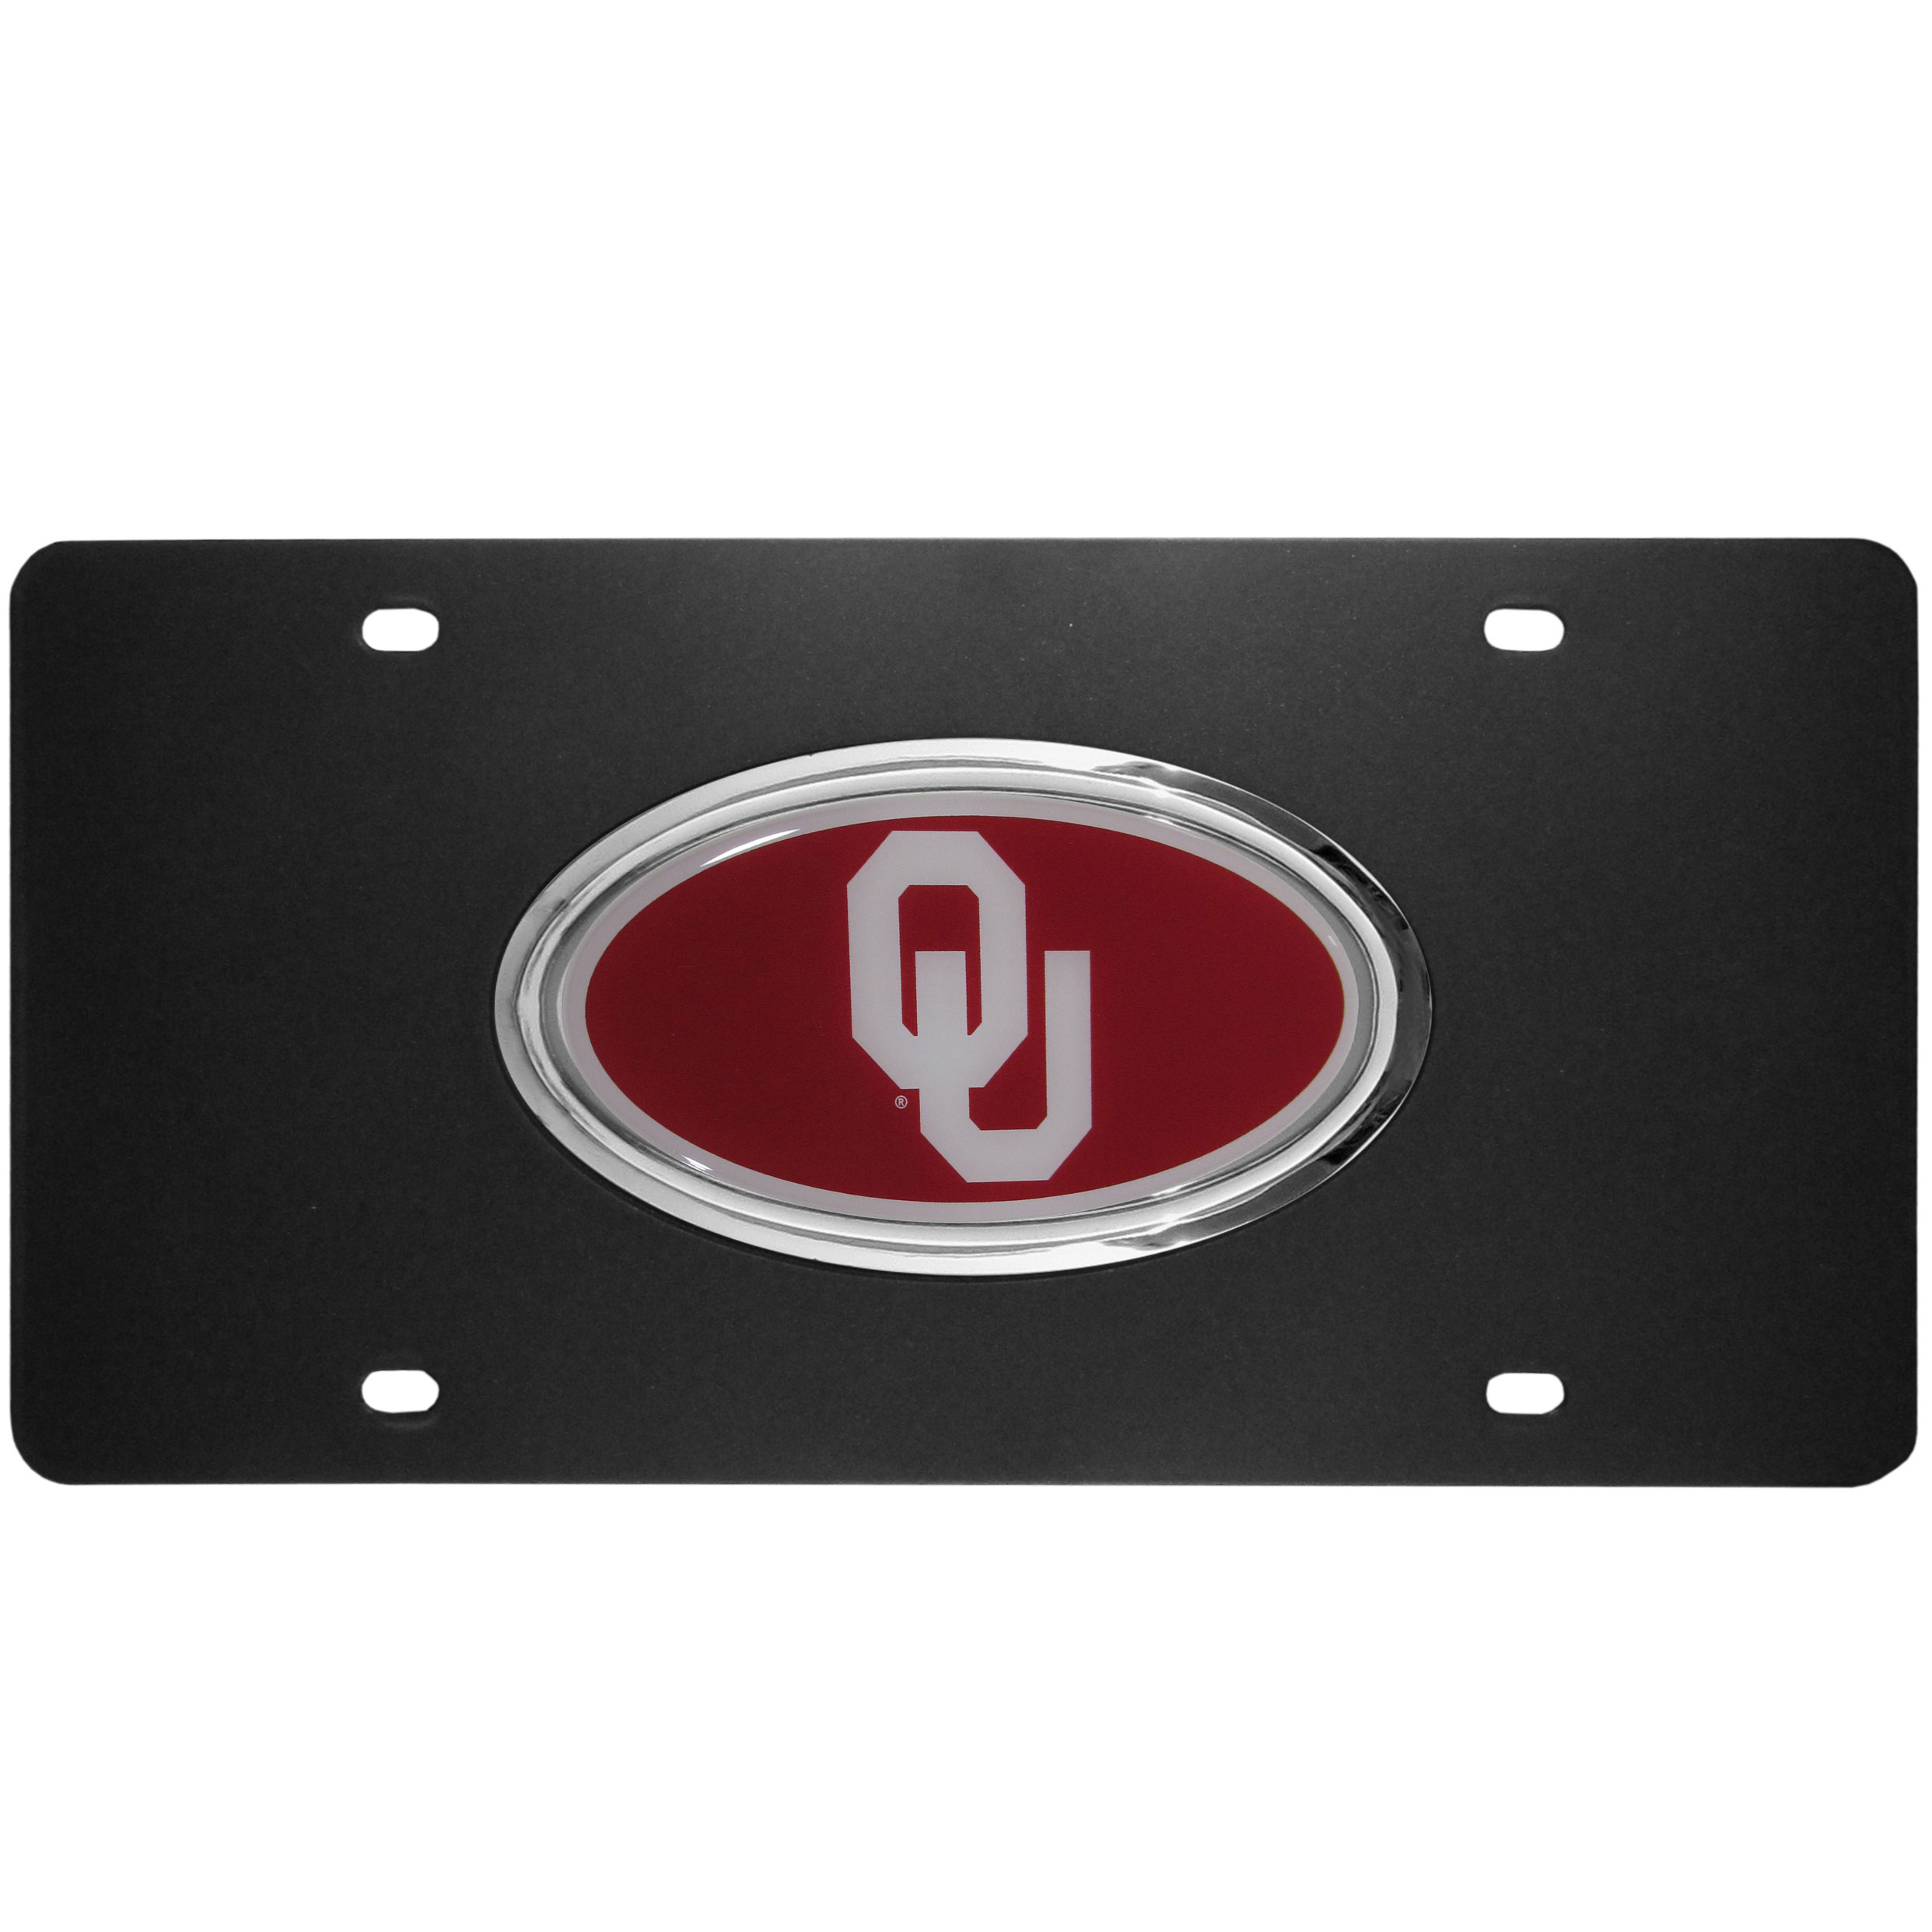 Oklahoma Sooners Acrylic License Plate - Our Oklahoma Sooners acrylic license plate is a step above the rest. It is made of thick, durable acrylic with a matte black finish and raised chrome saddle for the extra large team emblem.